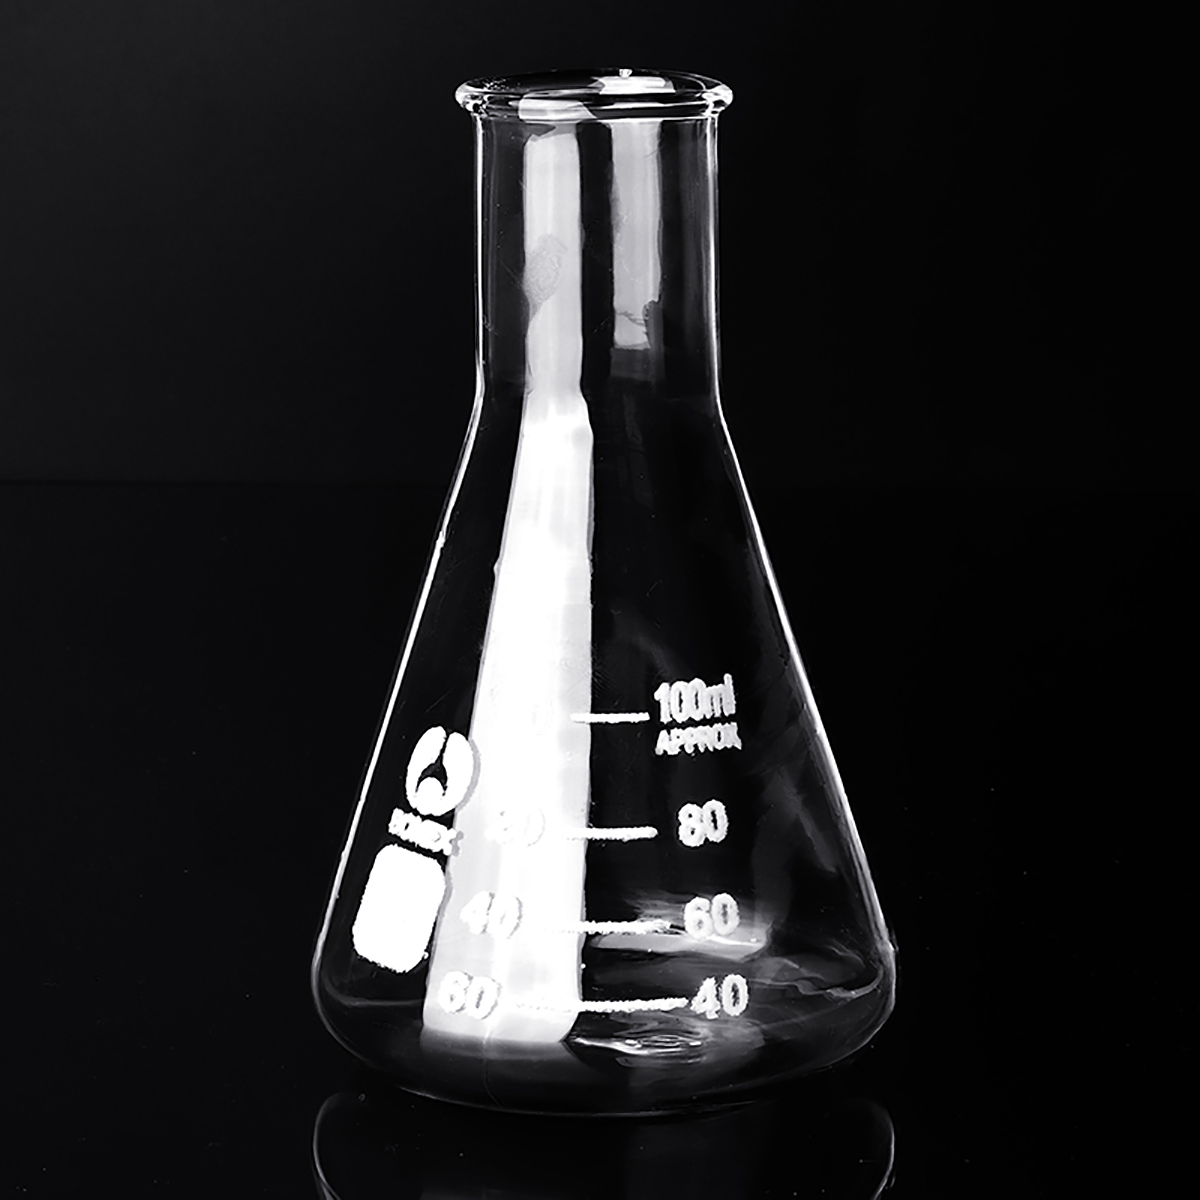 50-250ml Flat Bottom Conical Glass Flask Transparent Scientific Erlenmeyer Flask Lab Teaching Chemical Experiments Vessels